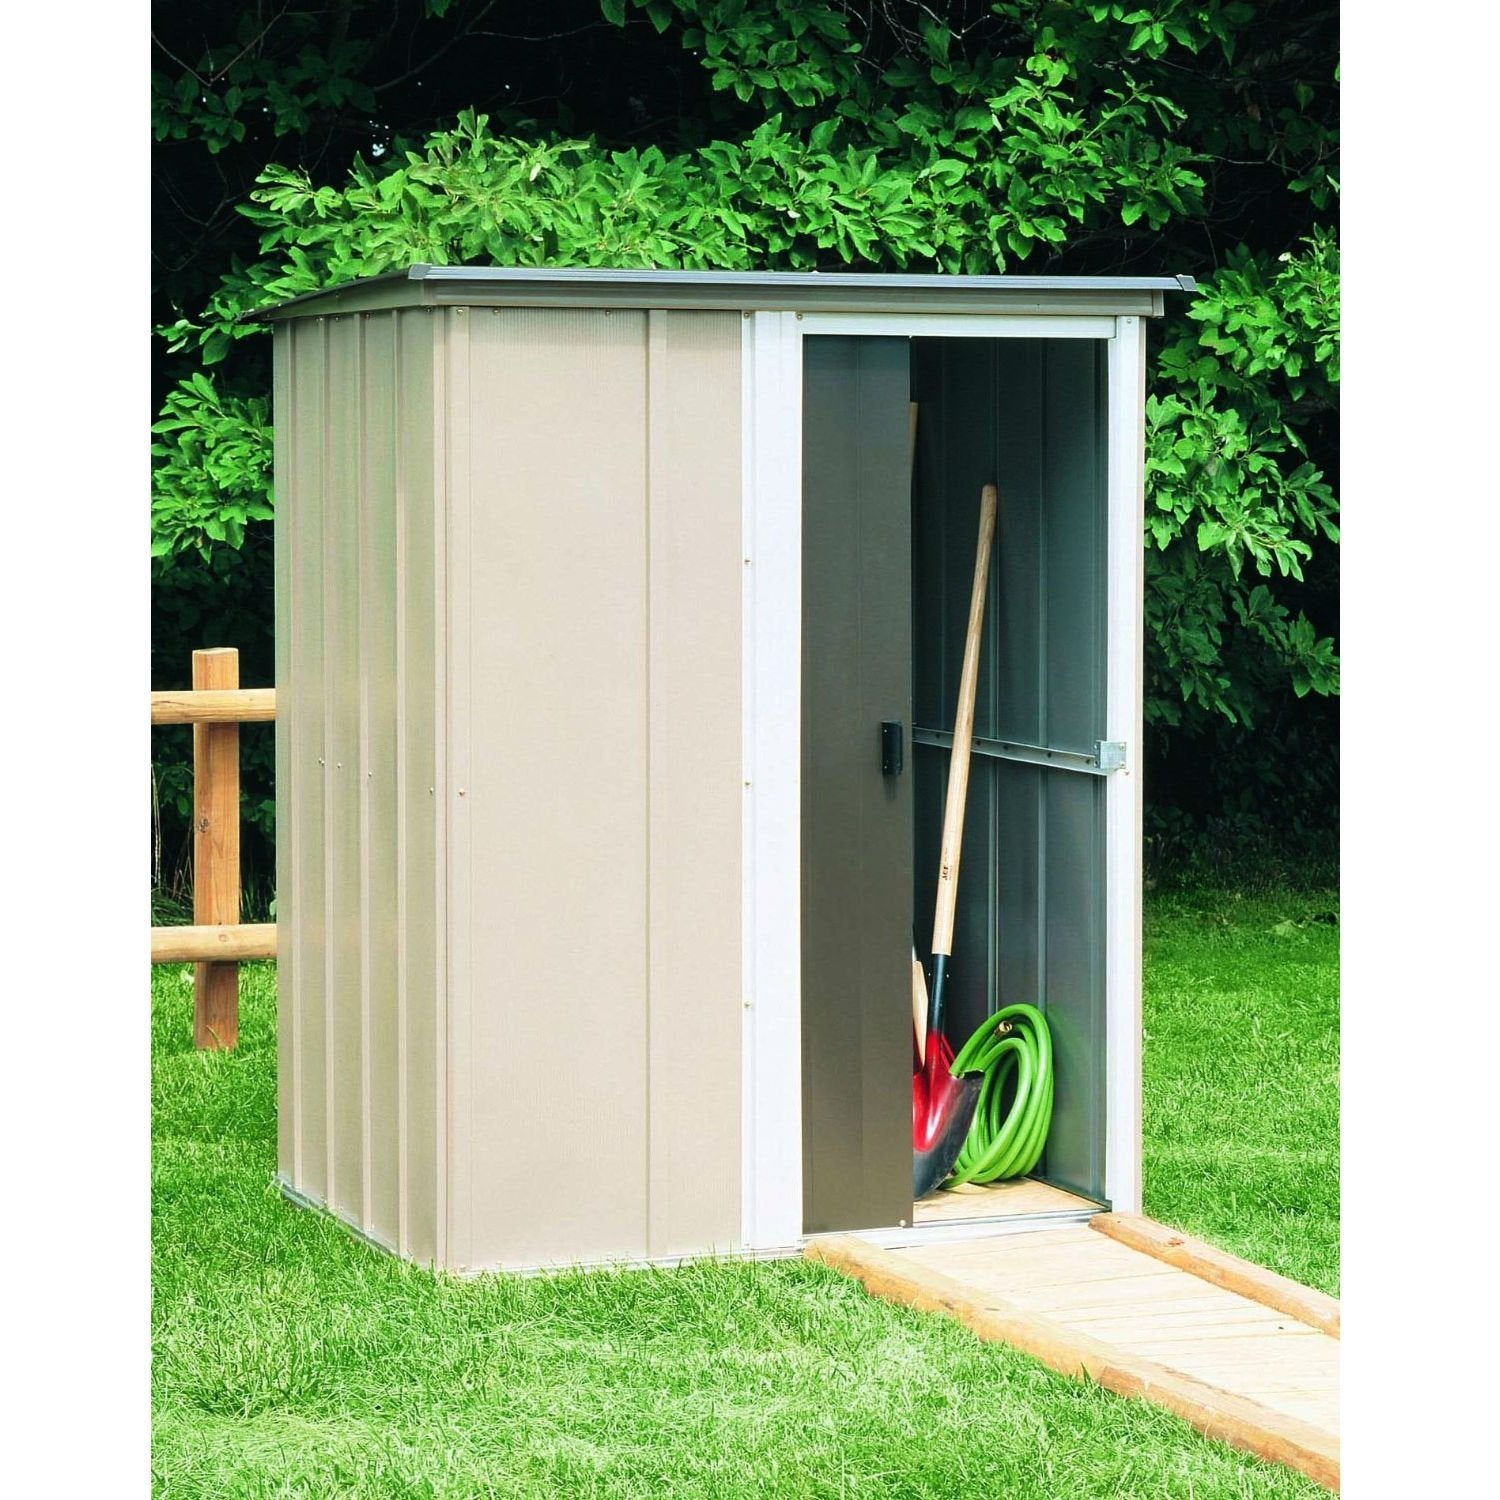 Garden Sheds 2 5 X 1 5 outdoor lawn garden tool storage shed - 4-ft x 5-ft